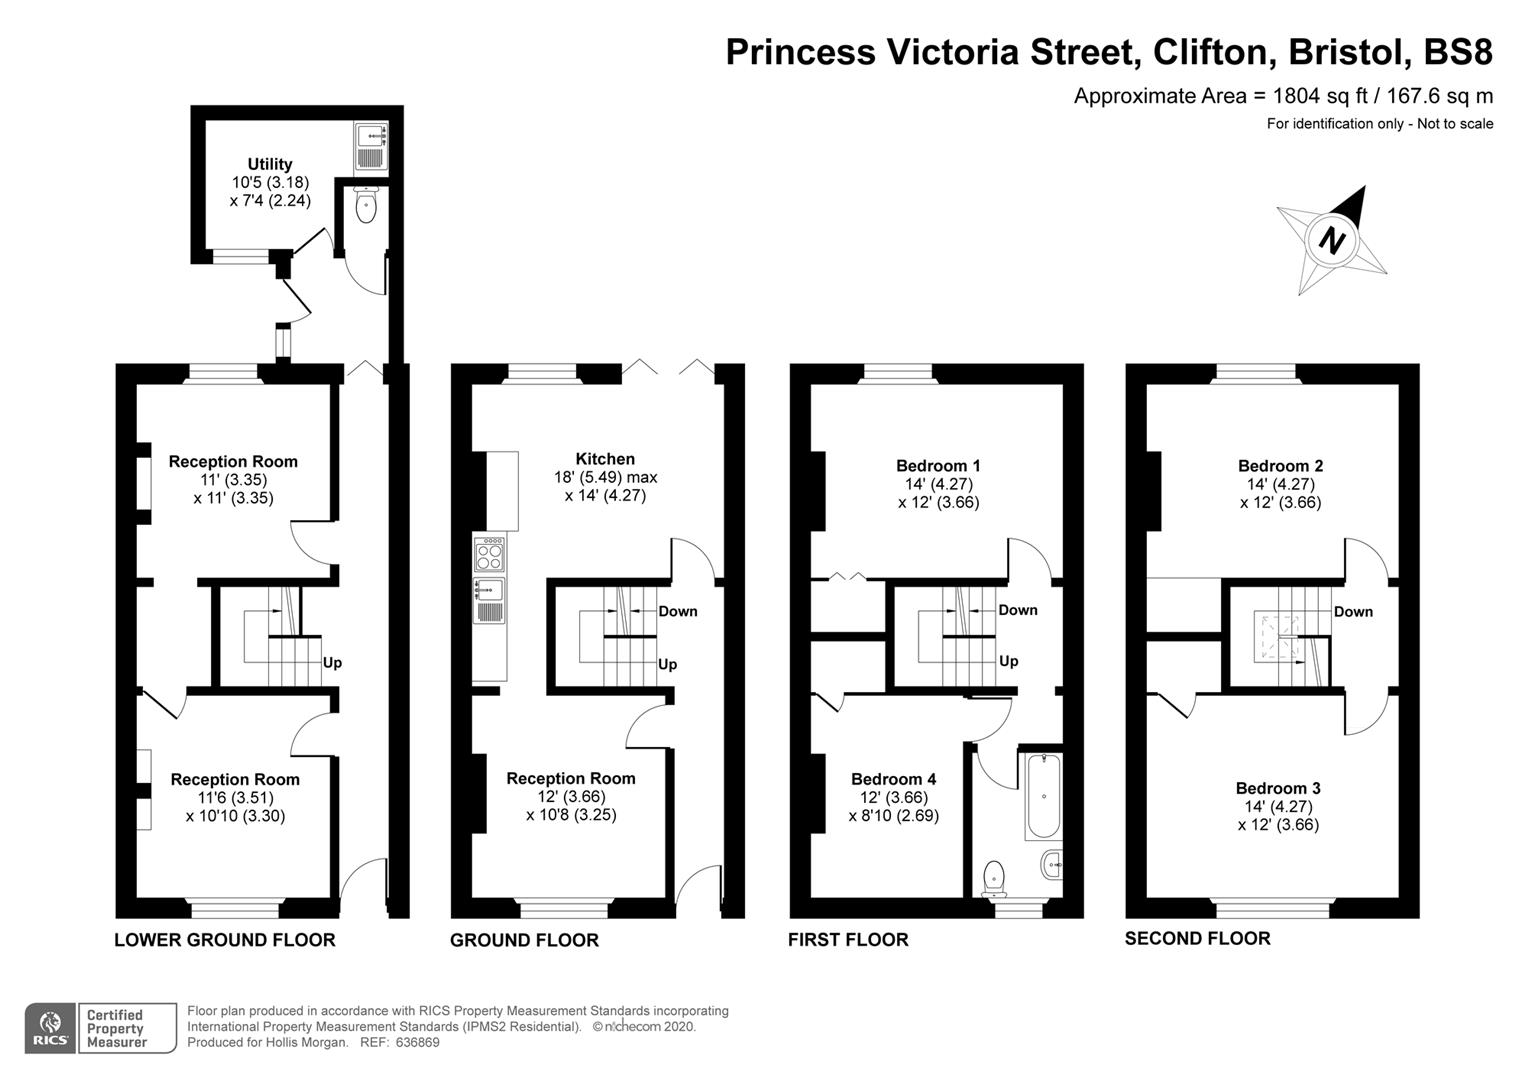 Floorplans For Princess Victoria Street, Clifton